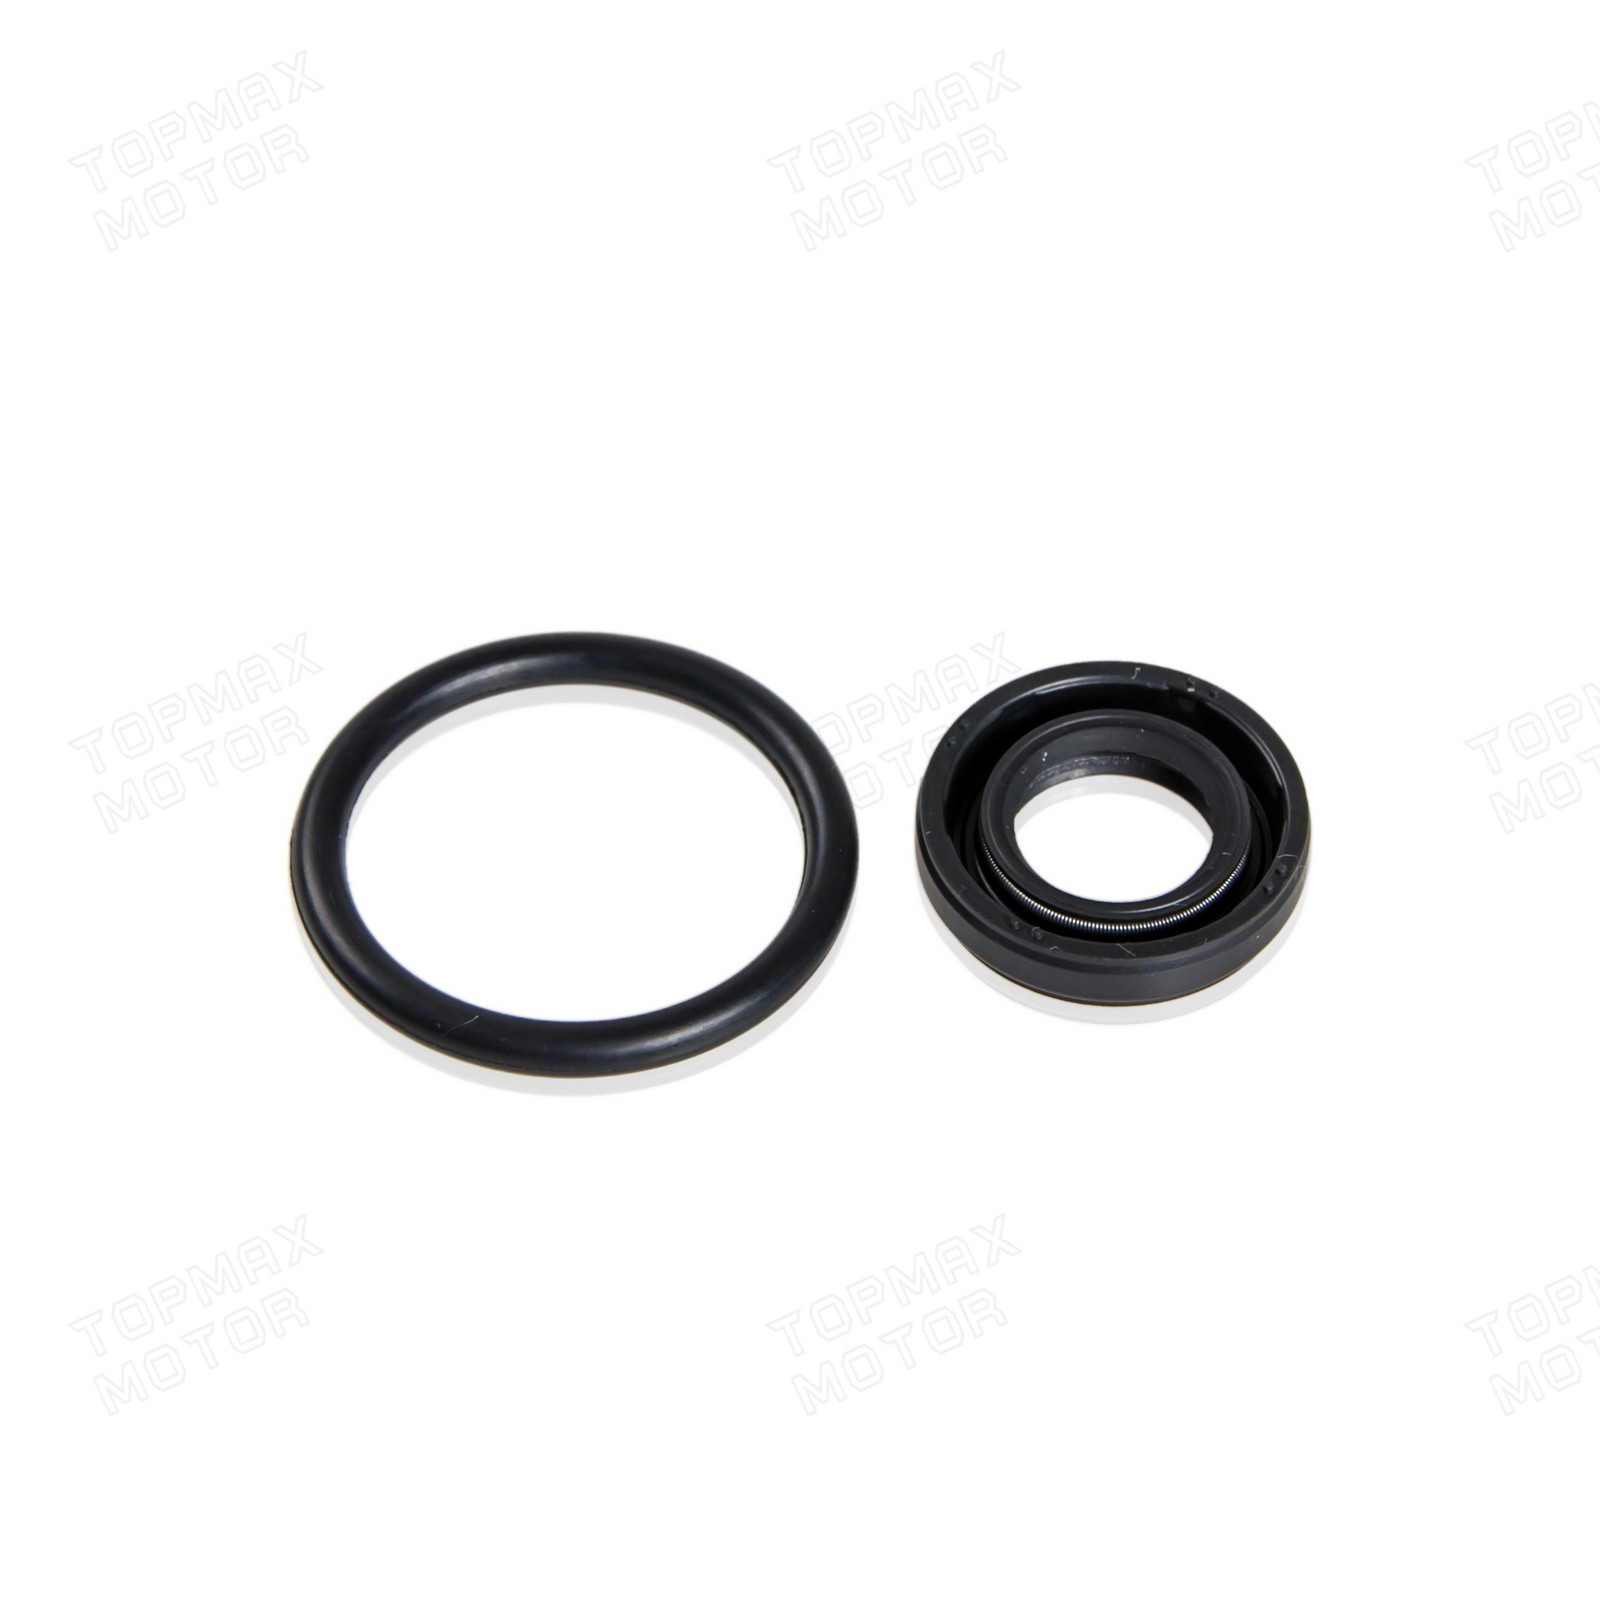 Distributor O-ring Oil Seal Fit For 1994-2001 Acura